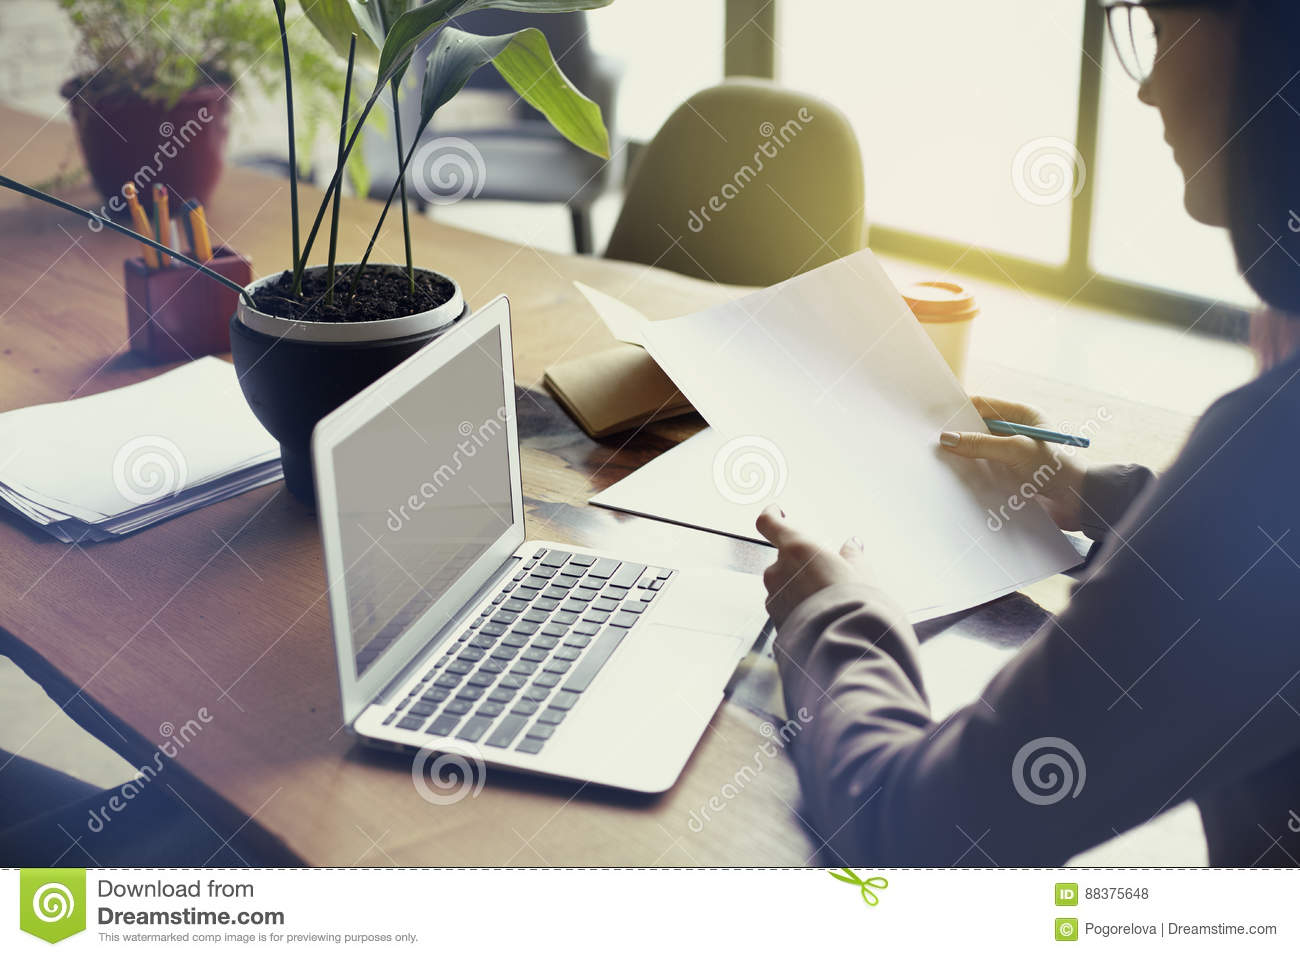 Download Businesswoman With Documents Paper Sheet In Loft Modern Office, Working On Laptop Computer. Team Working, Business People. Stock Photo - Image of digital, marketing: 88375648